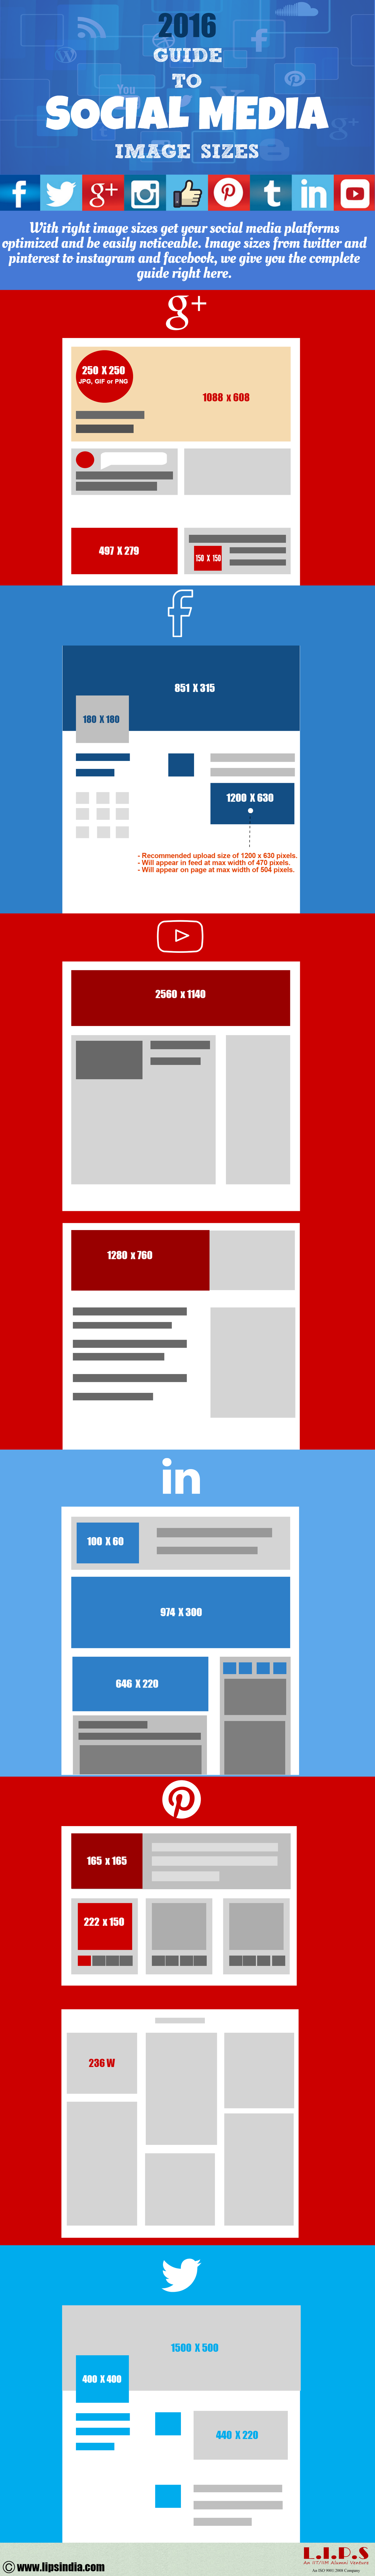 2016 Guide to Social Media Image Sizes Infographic